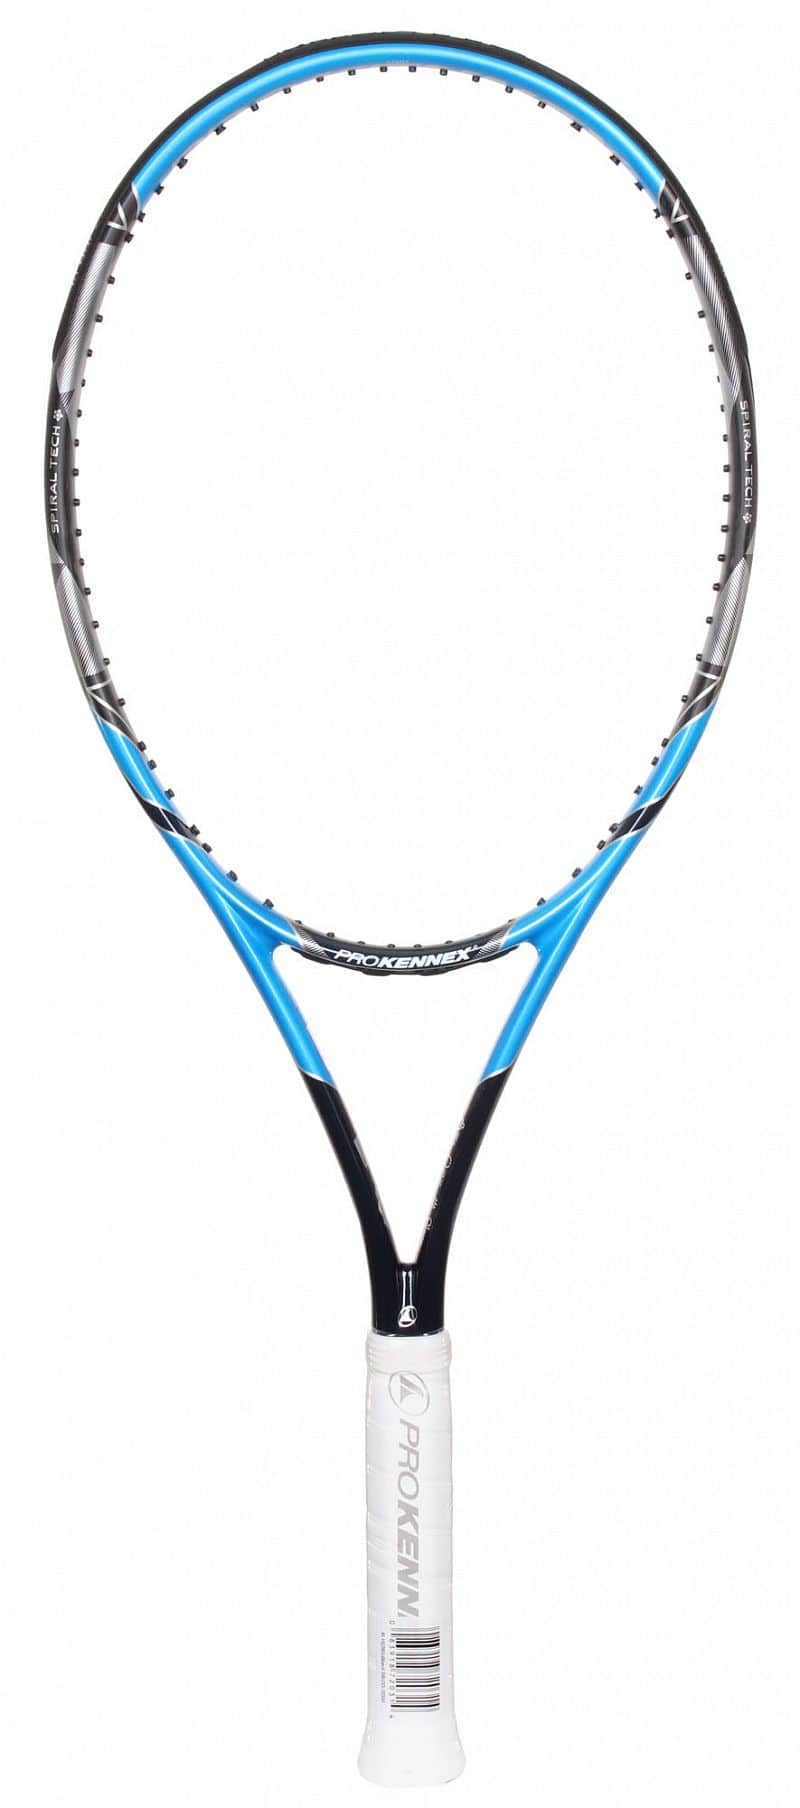 Pro Kennex Kinetic Ki 15 2017 - G3